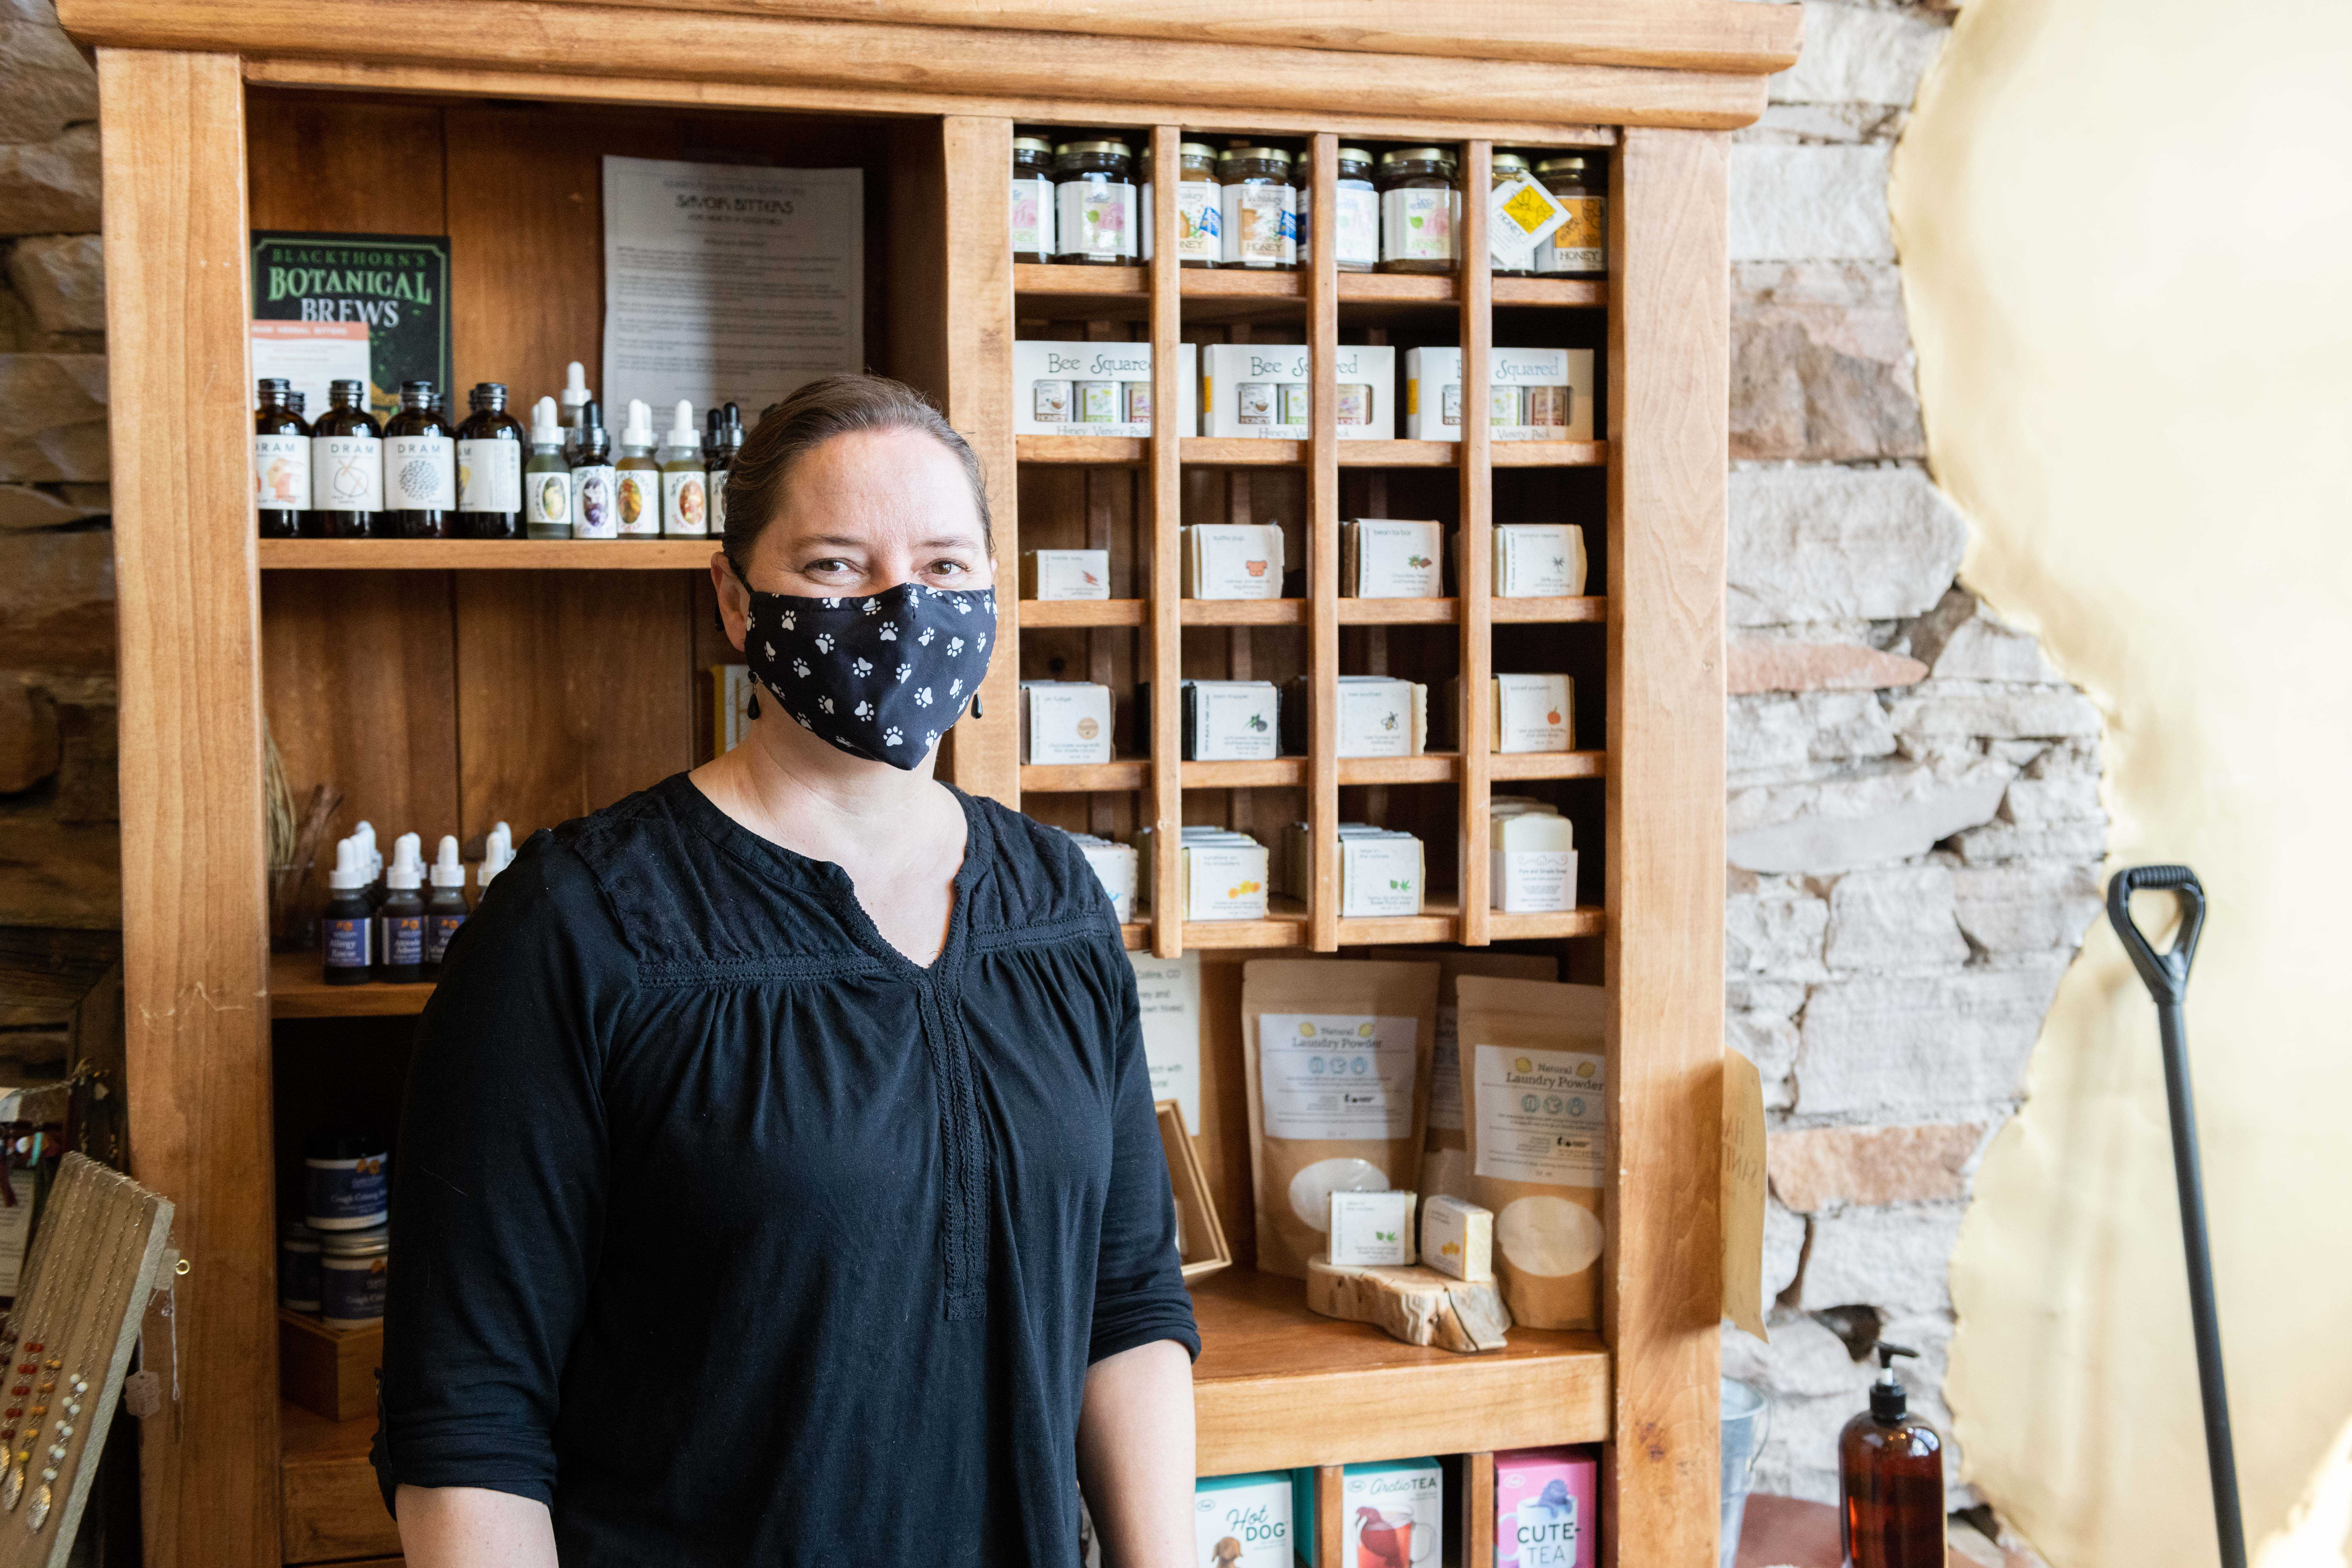 Marisa May, Sunlit Mountain founder, stands next to a shelf of her products